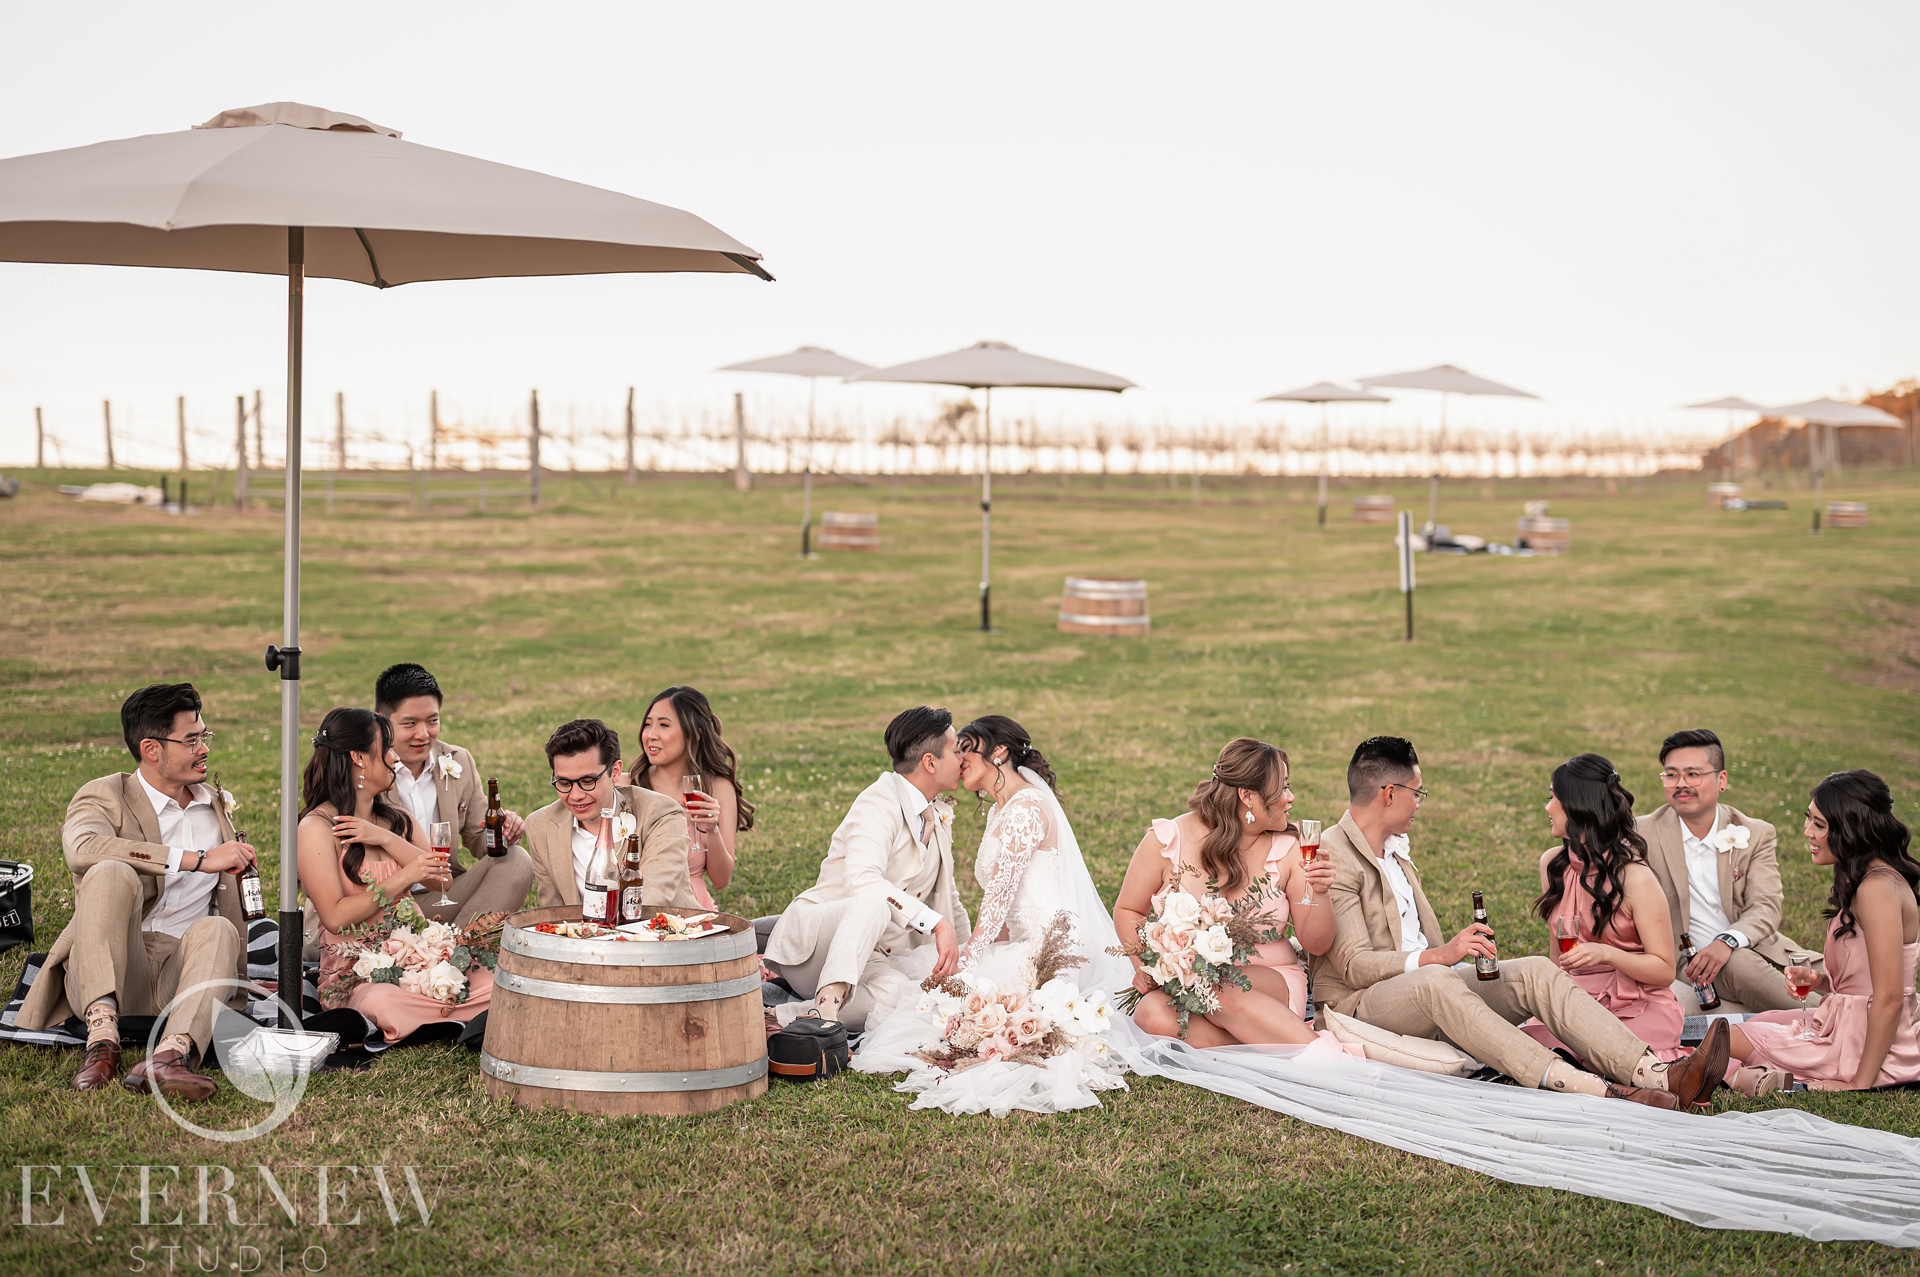 This is how you chillax with your wedding crew, Sirromet-style